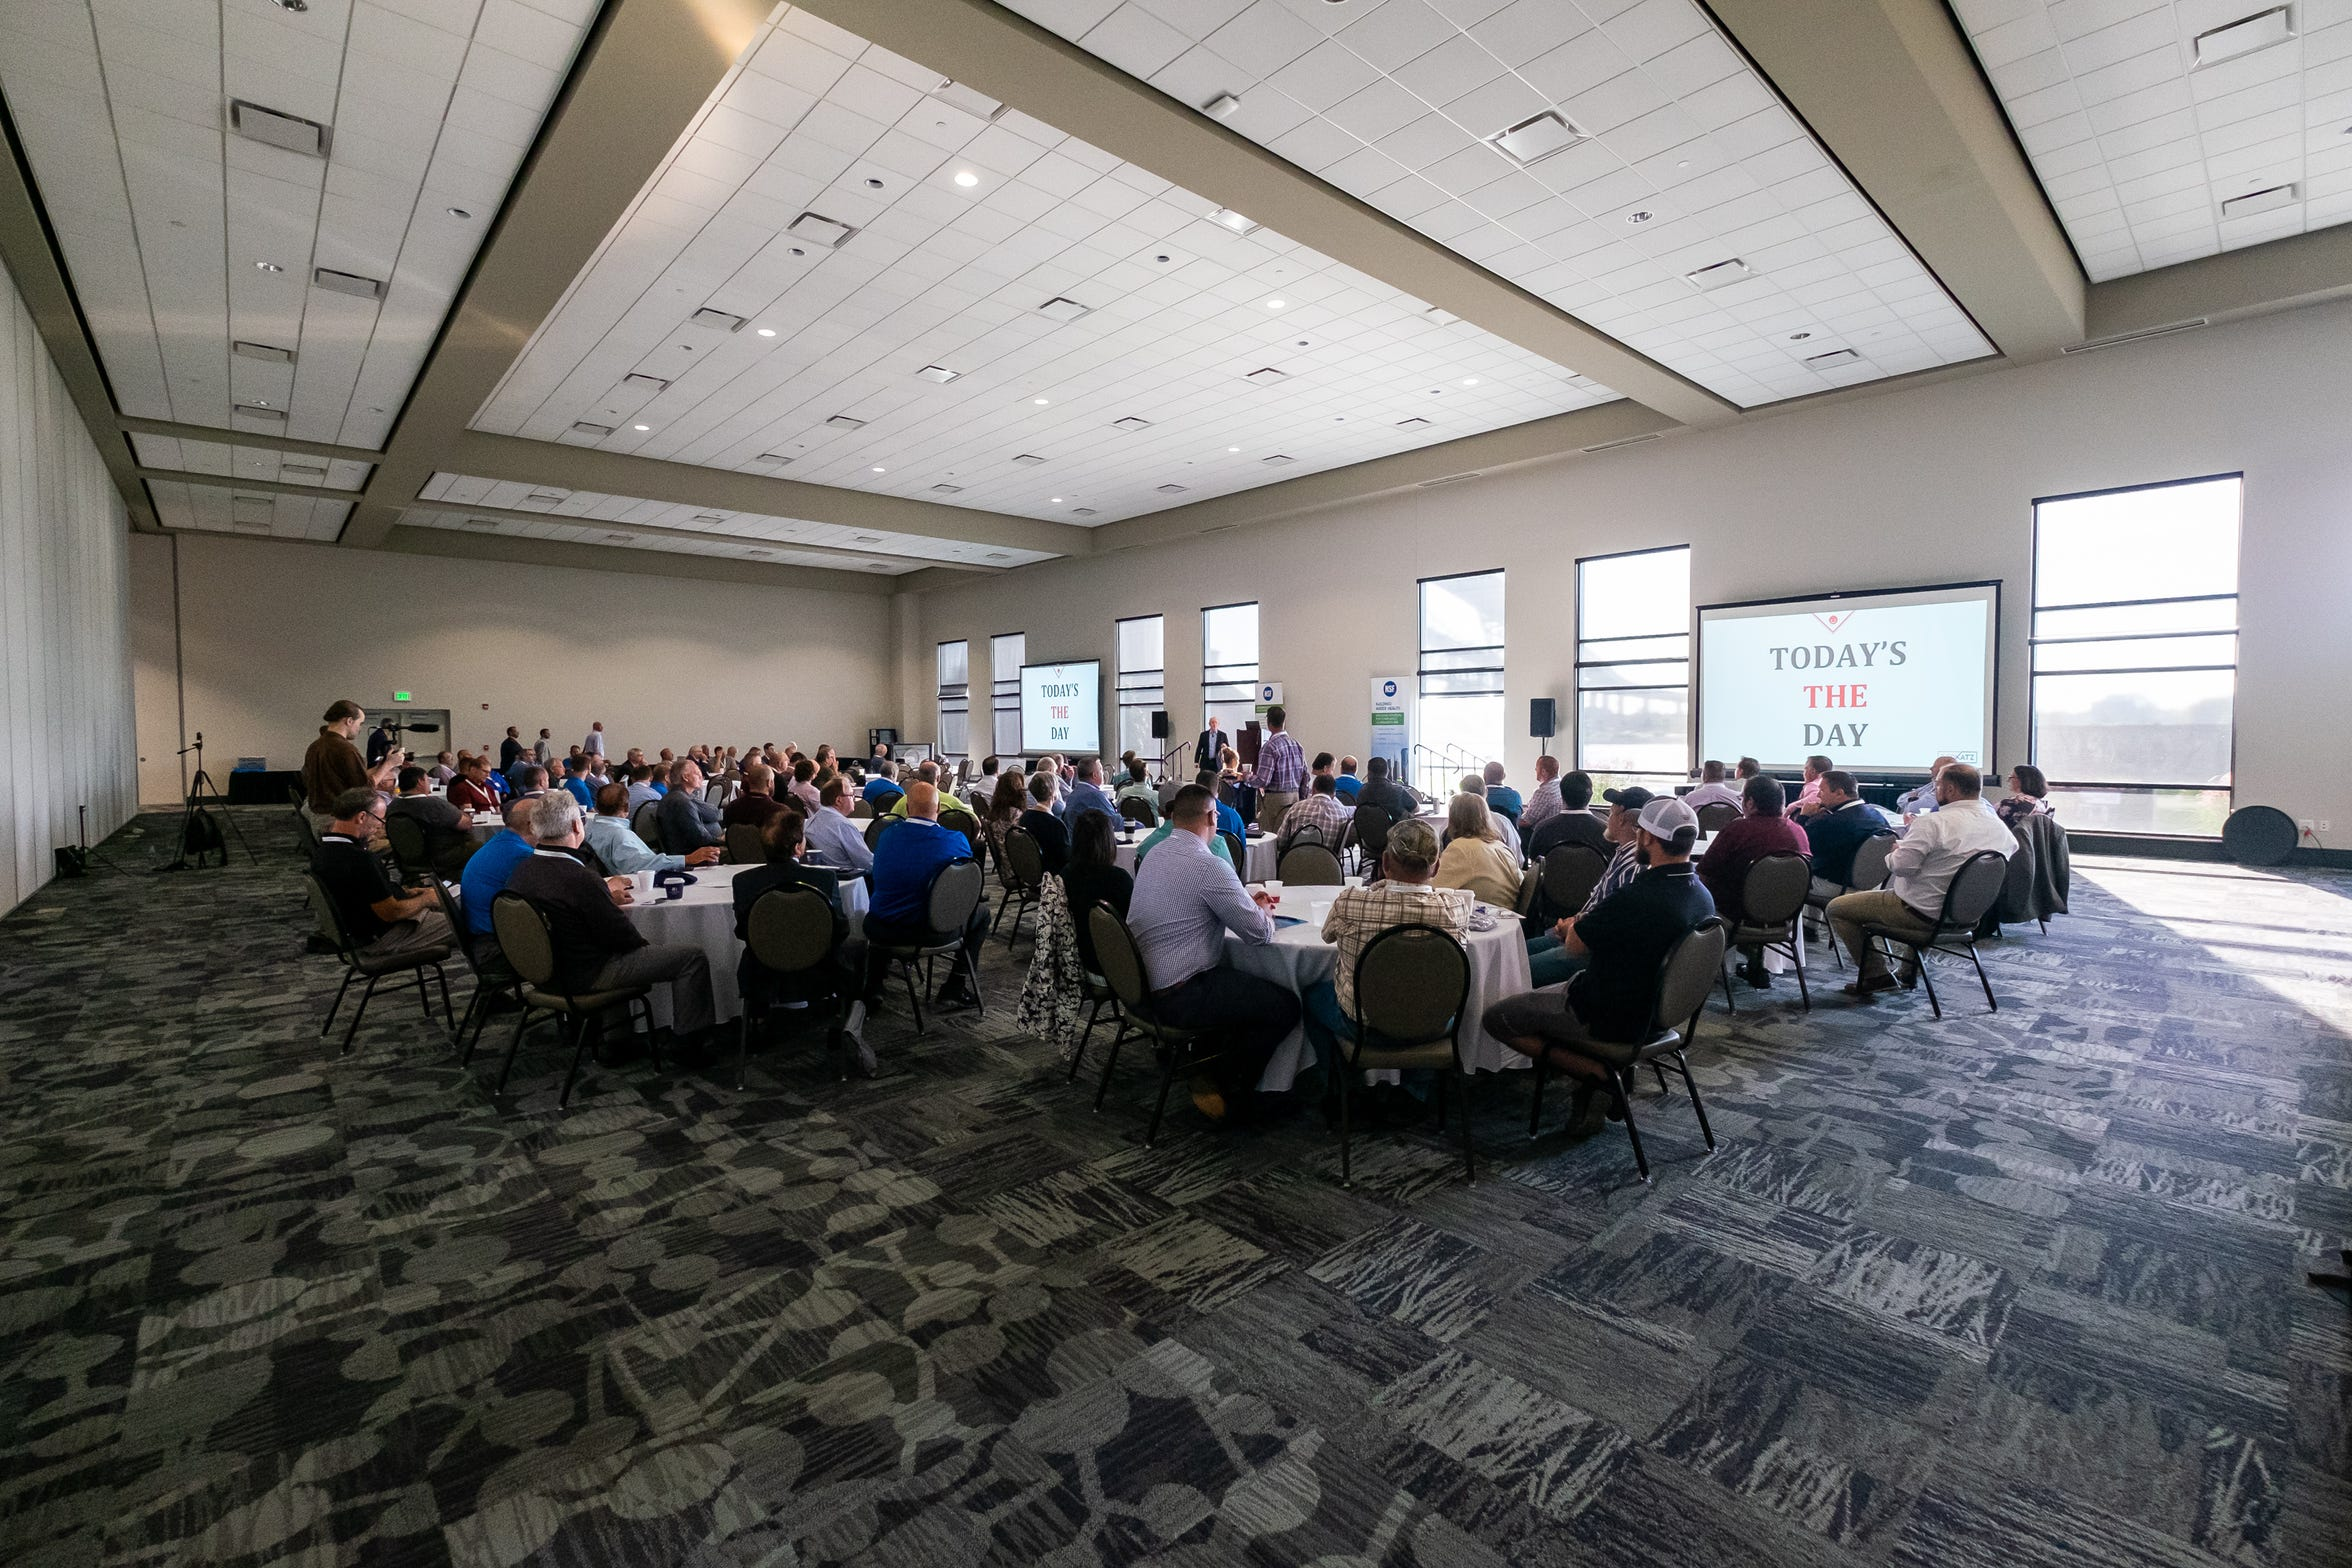 Entrepreneur and professional speaker Red Katz delivers a keynote address Thursday, Sept. 19, 2019, during the annual Michigan Society for Healthcare Engineering conference at the Blue Water Convention Center.